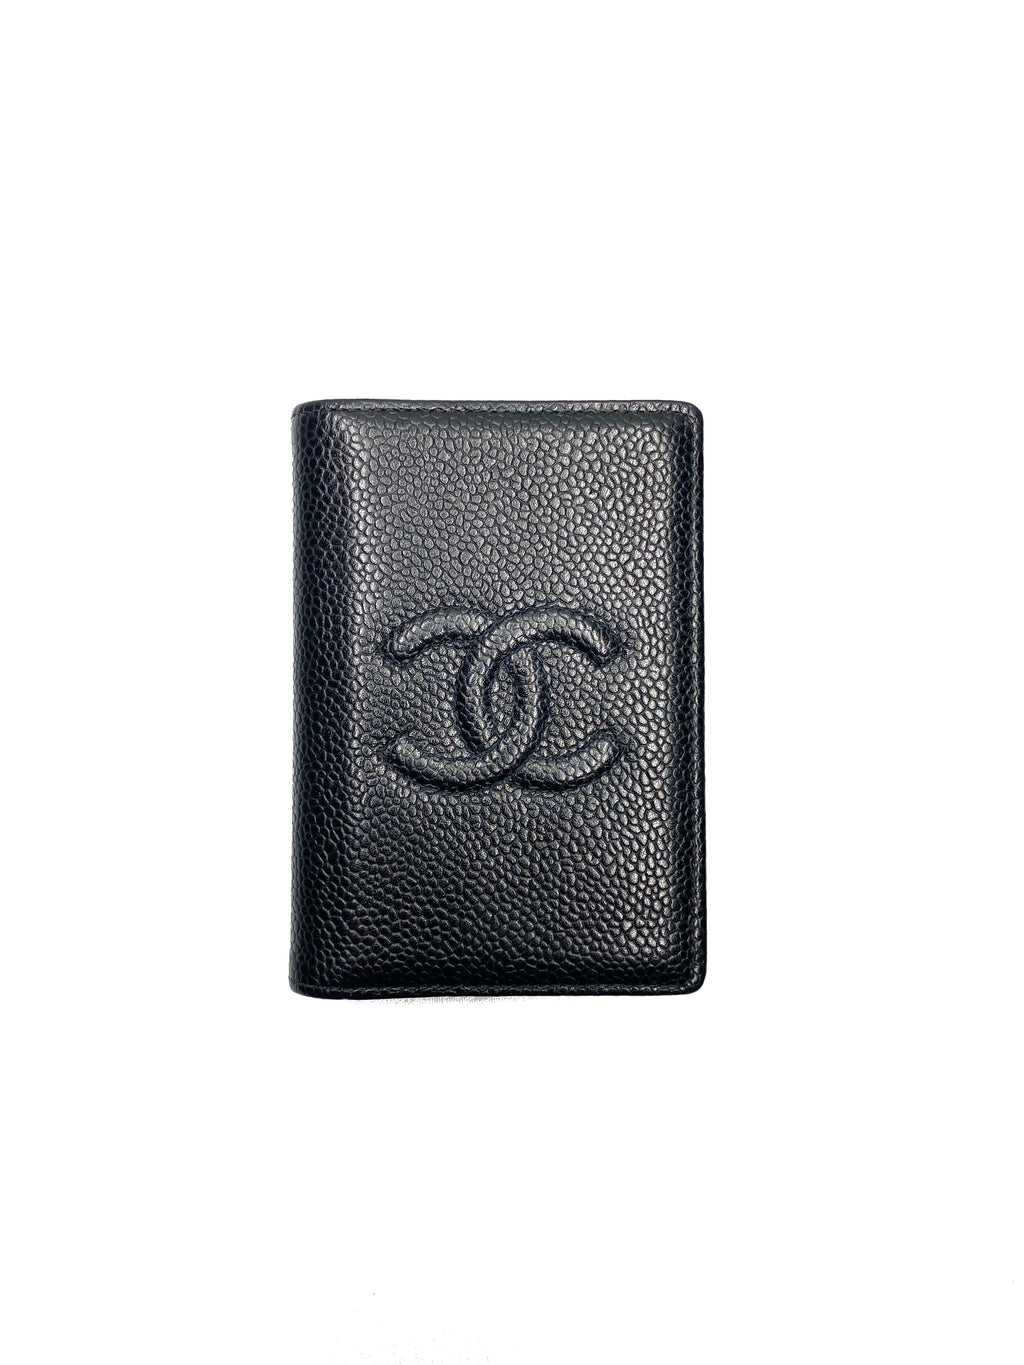 CHANEL - TIMELESS CC BLACK LEATHER CARD HOLDER POCKET ORGANISER